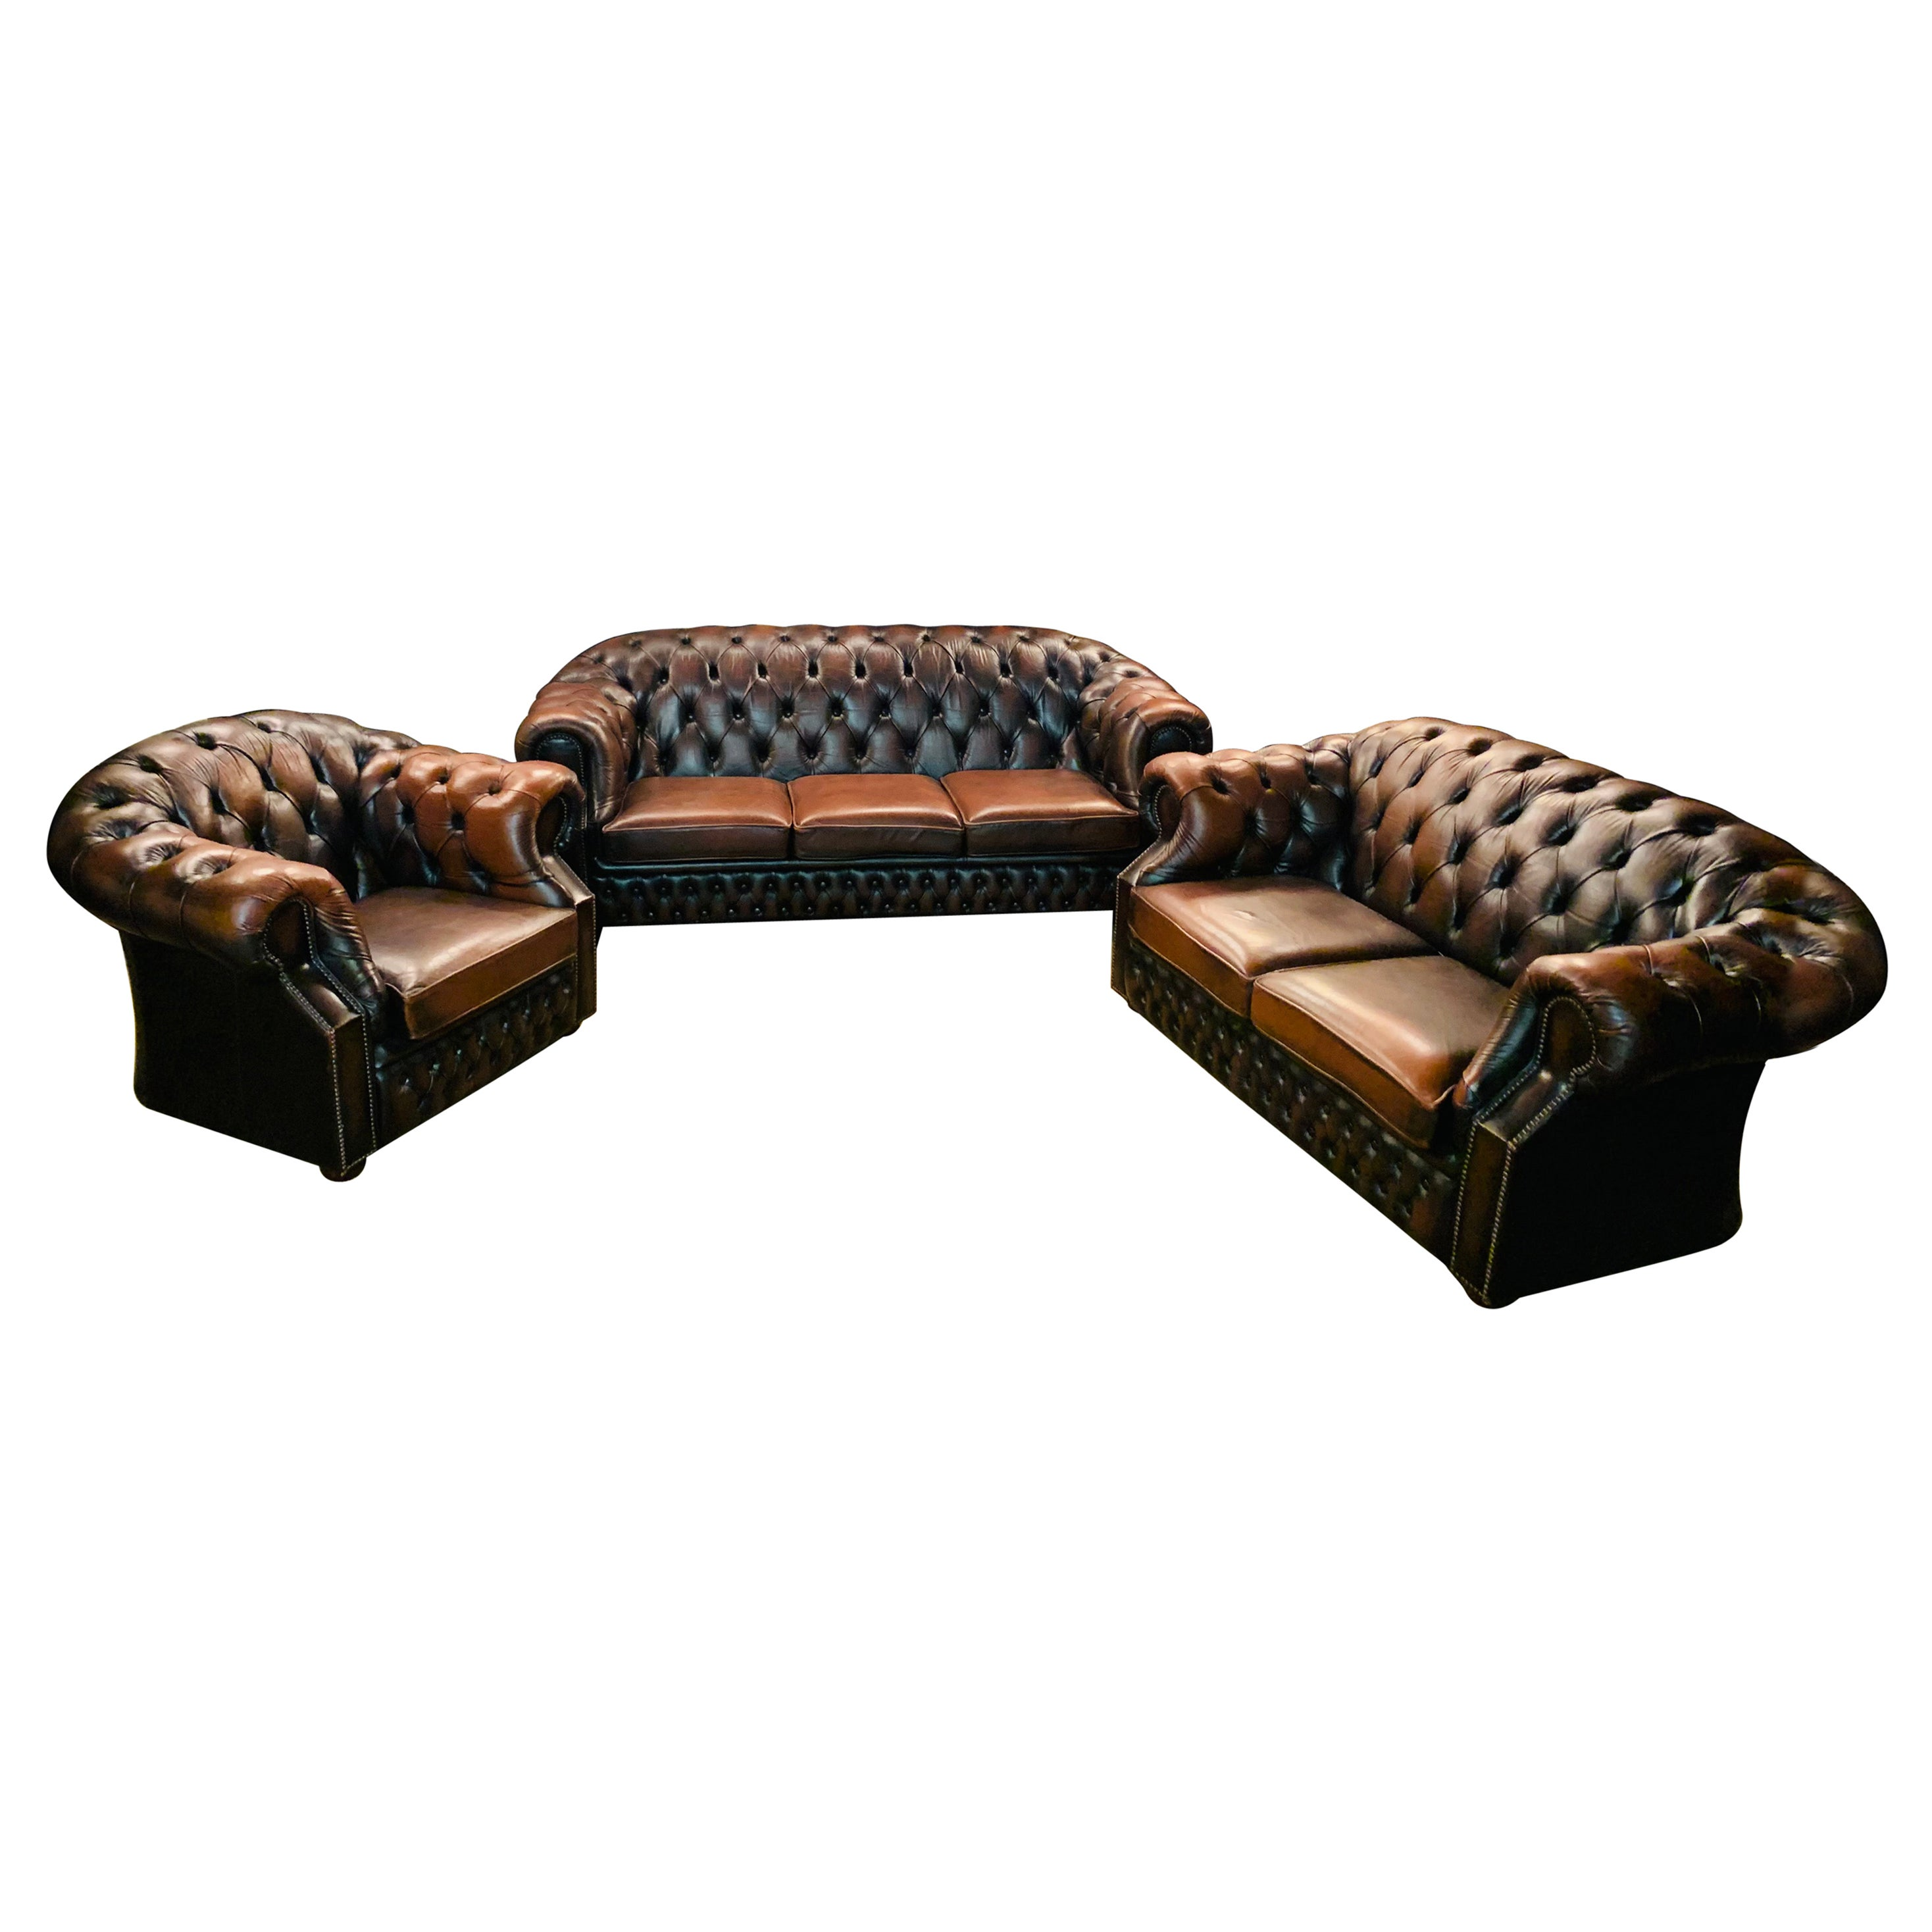 Chesterfield Set Kent Modell 3, 2 Seater and Armchair Brand by Centurion